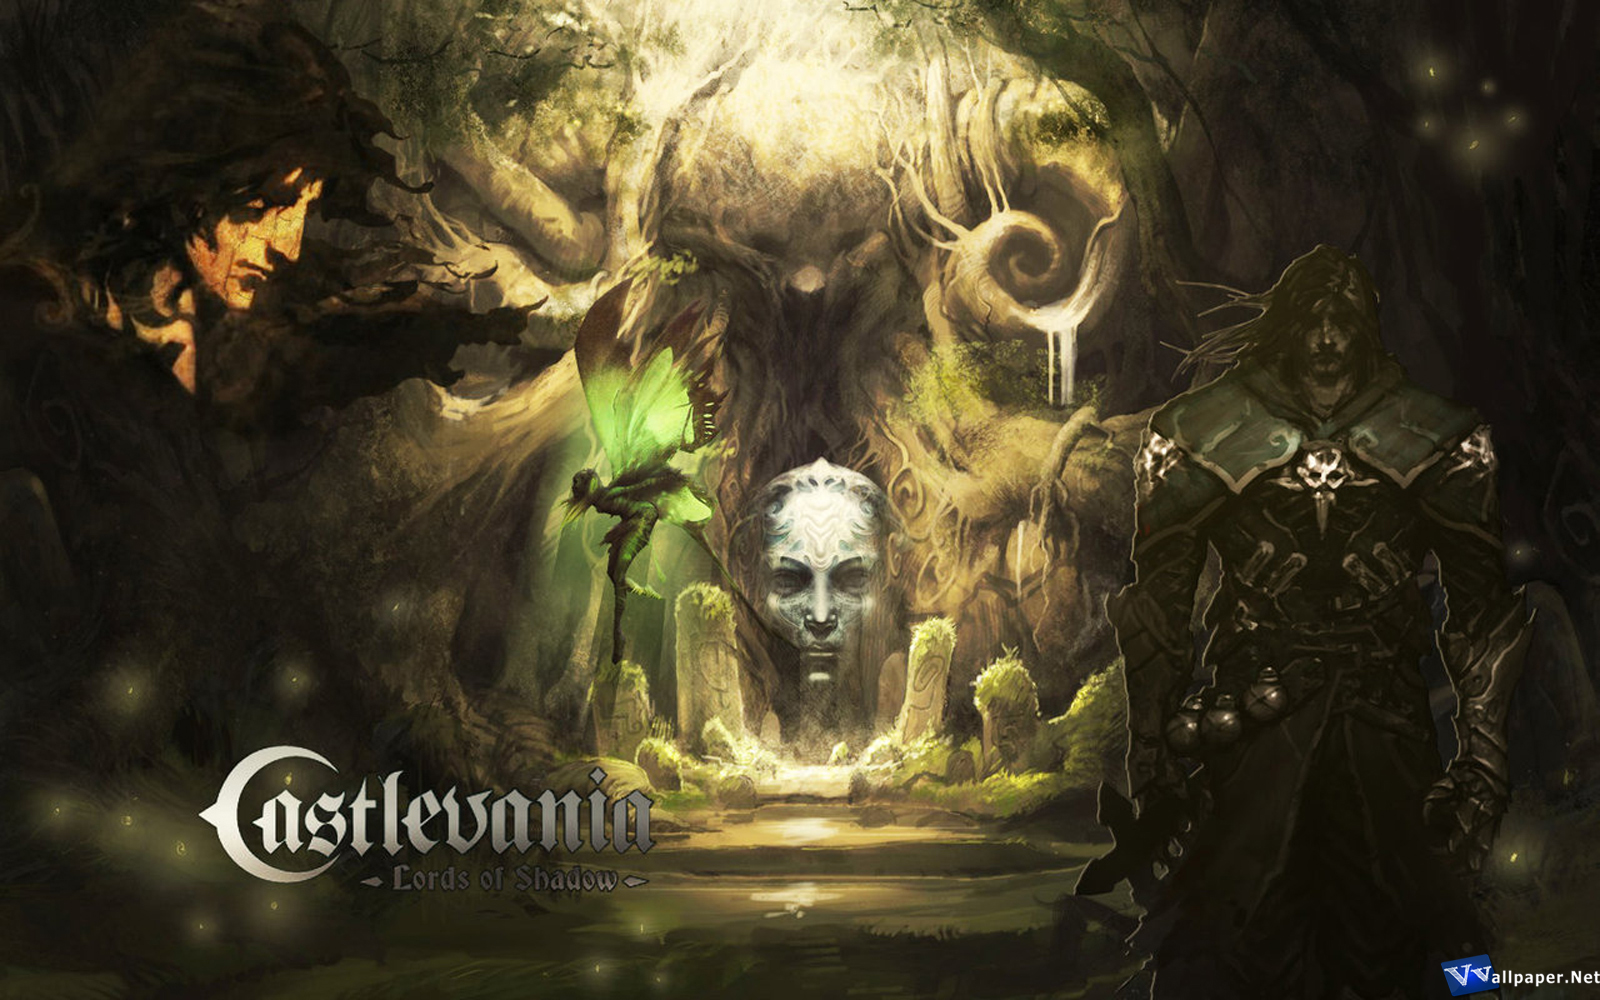 Castlevania_Lord_of_Shadow_Theme_Art_HD_